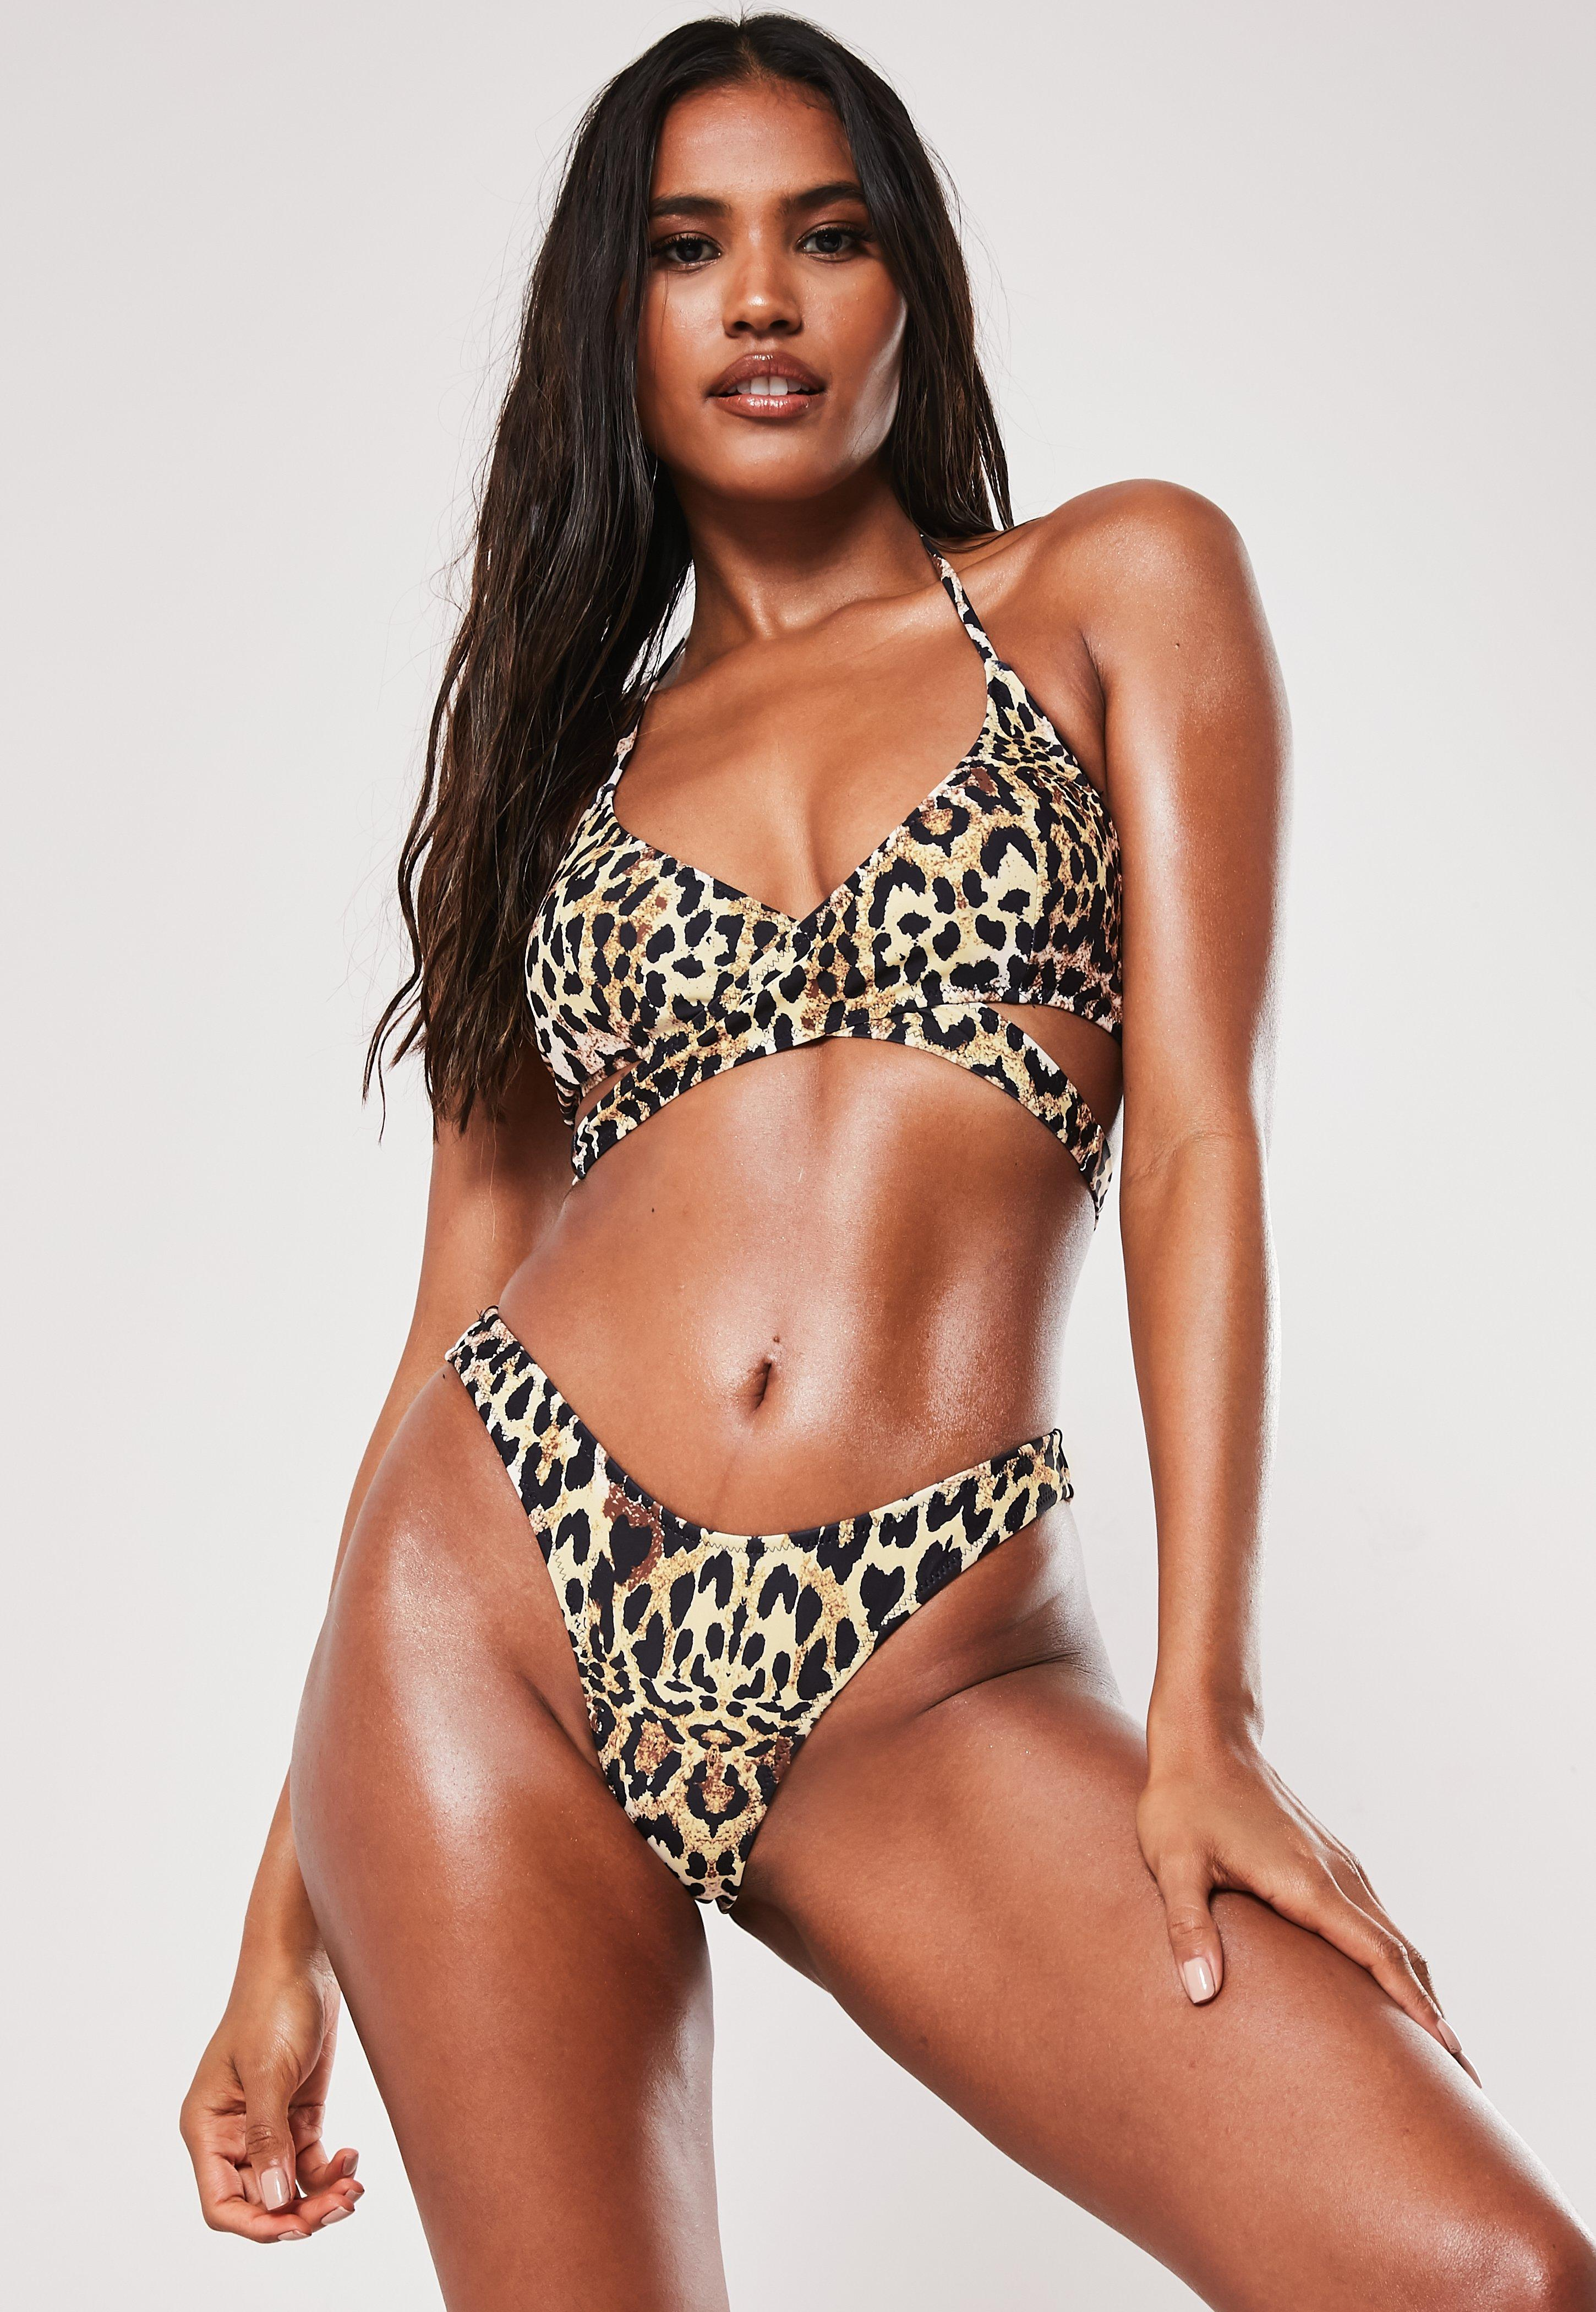 fbba9ec58ed23 Animal Print Clothing | Snake & Leopard Print Dresses - Missguided